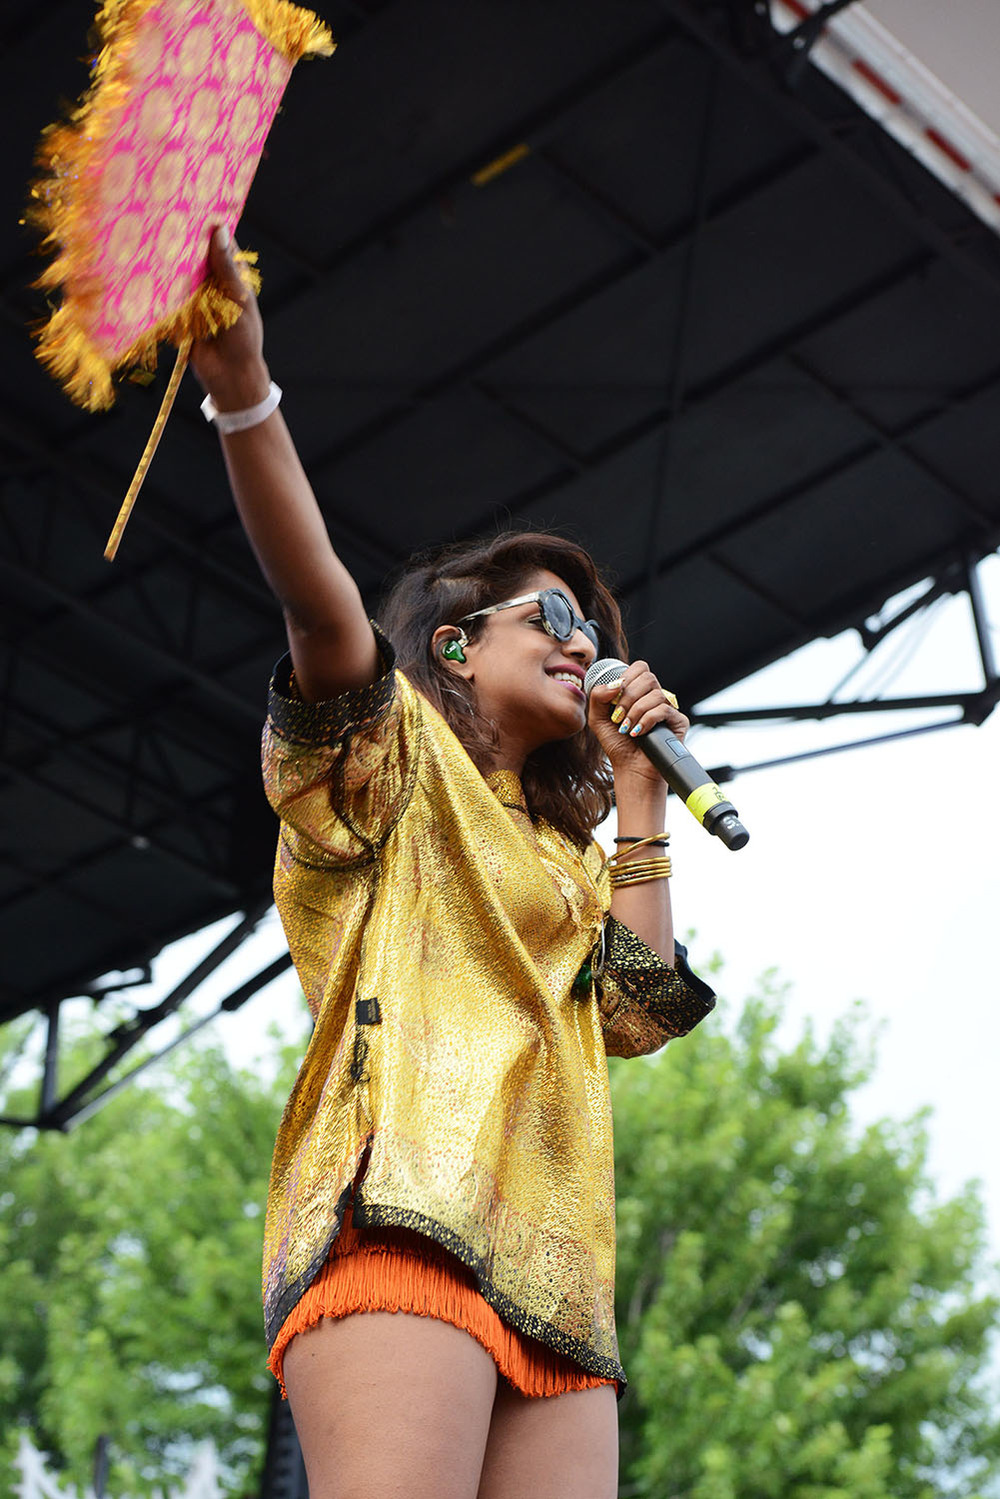 MIA at Pitchfork Festival